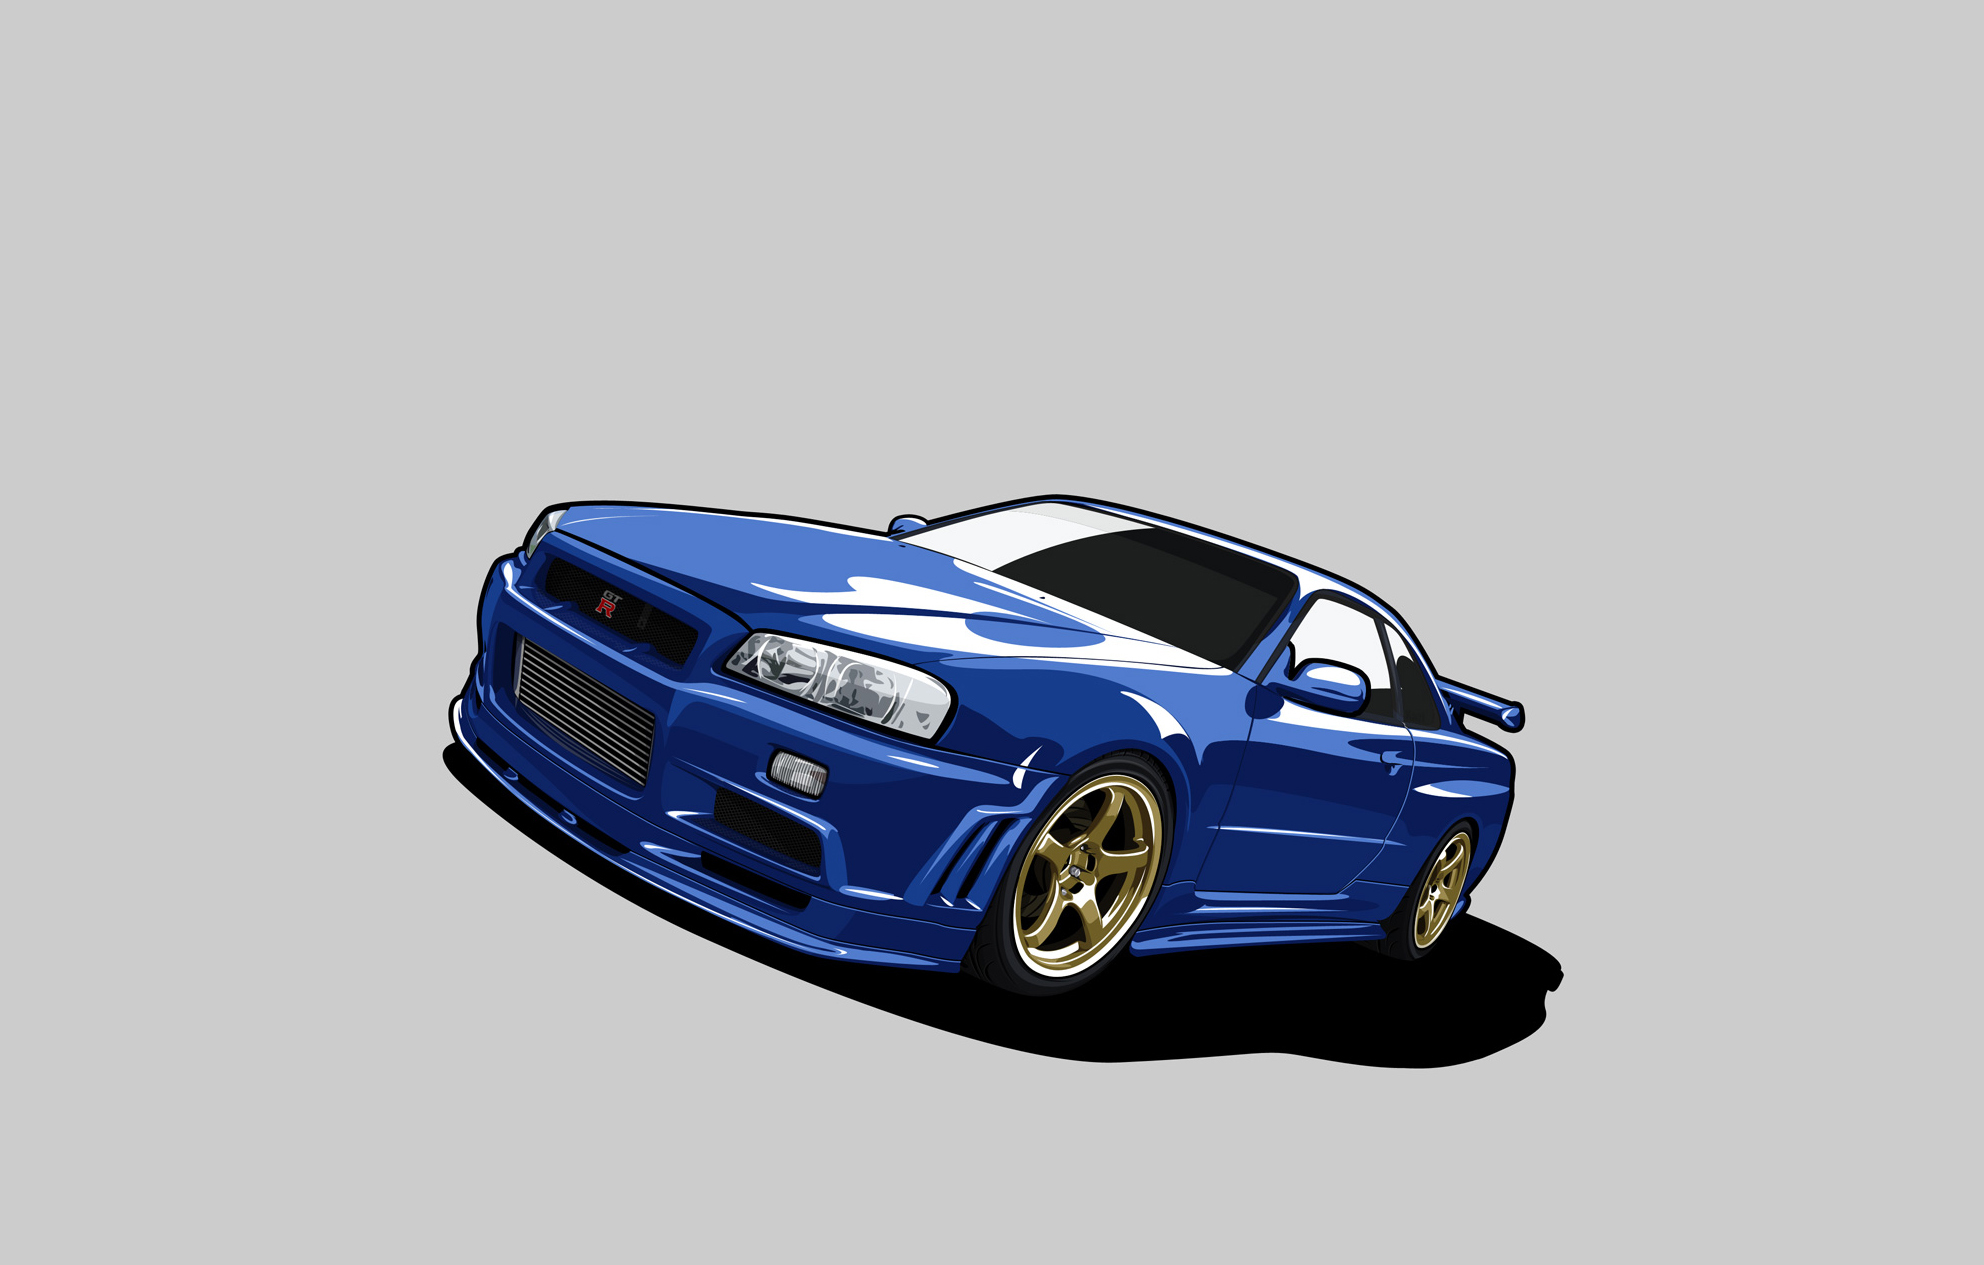 136273 download wallpaper Nissan, Cars, Minimalism, Gt-R, Gtr, Skyline, R34 screensavers and pictures for free